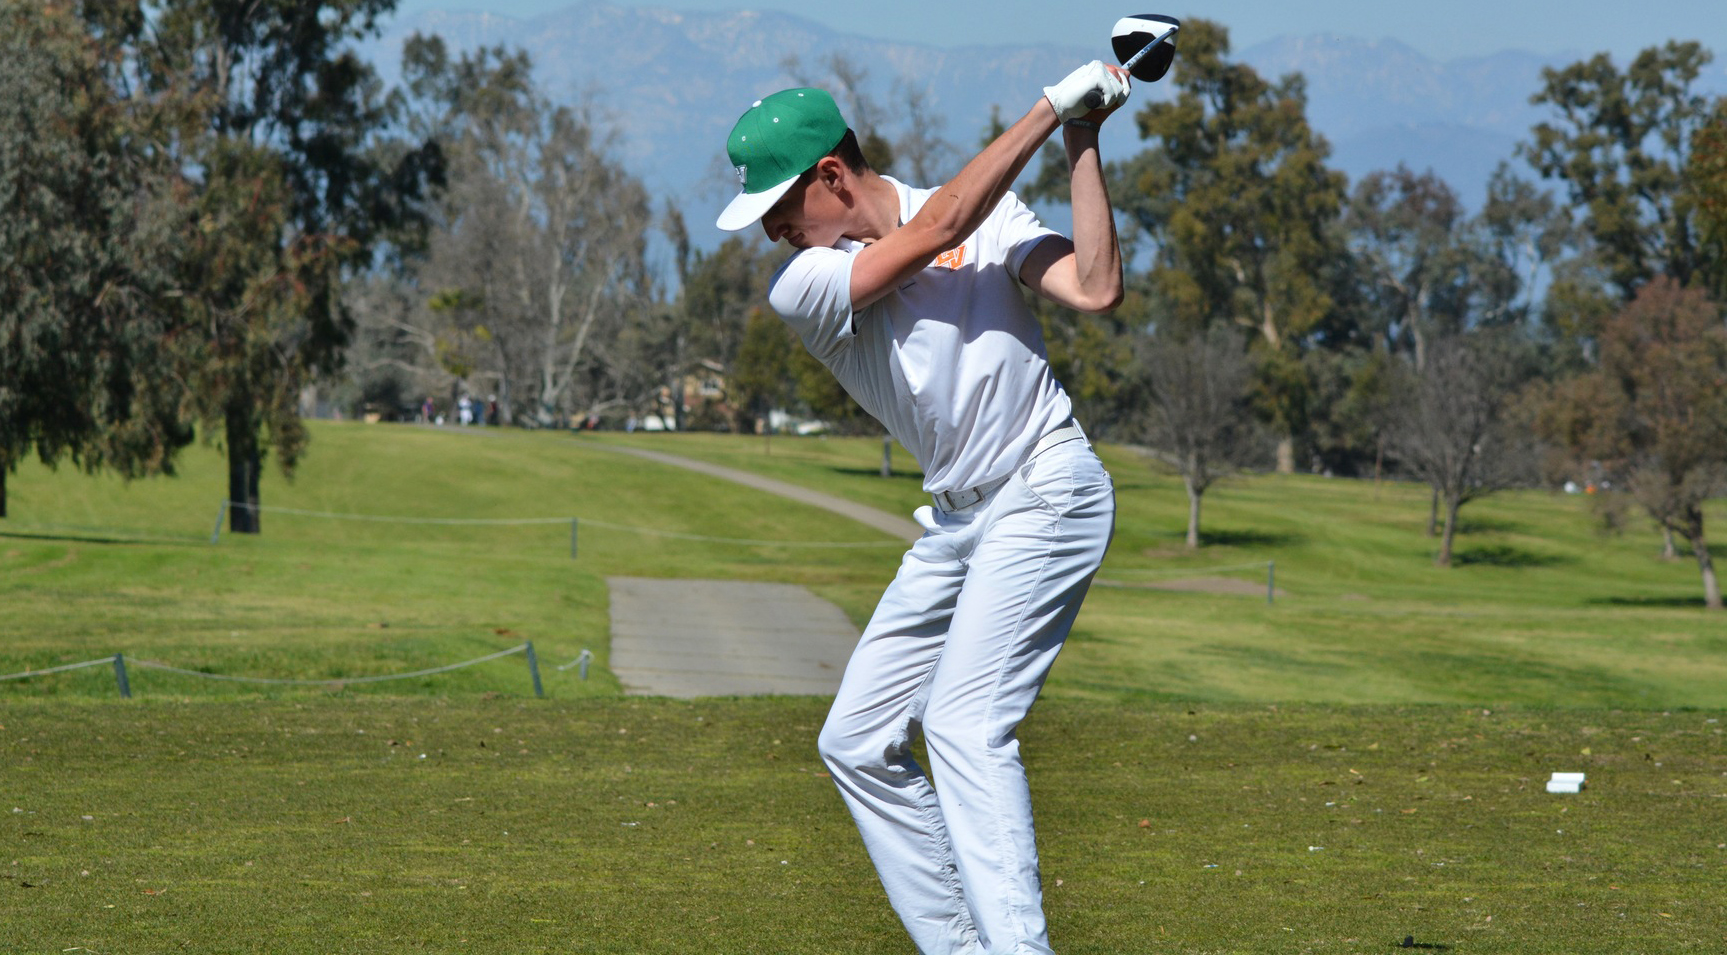 Men's Golf takes 3rd at Warrior Invitational